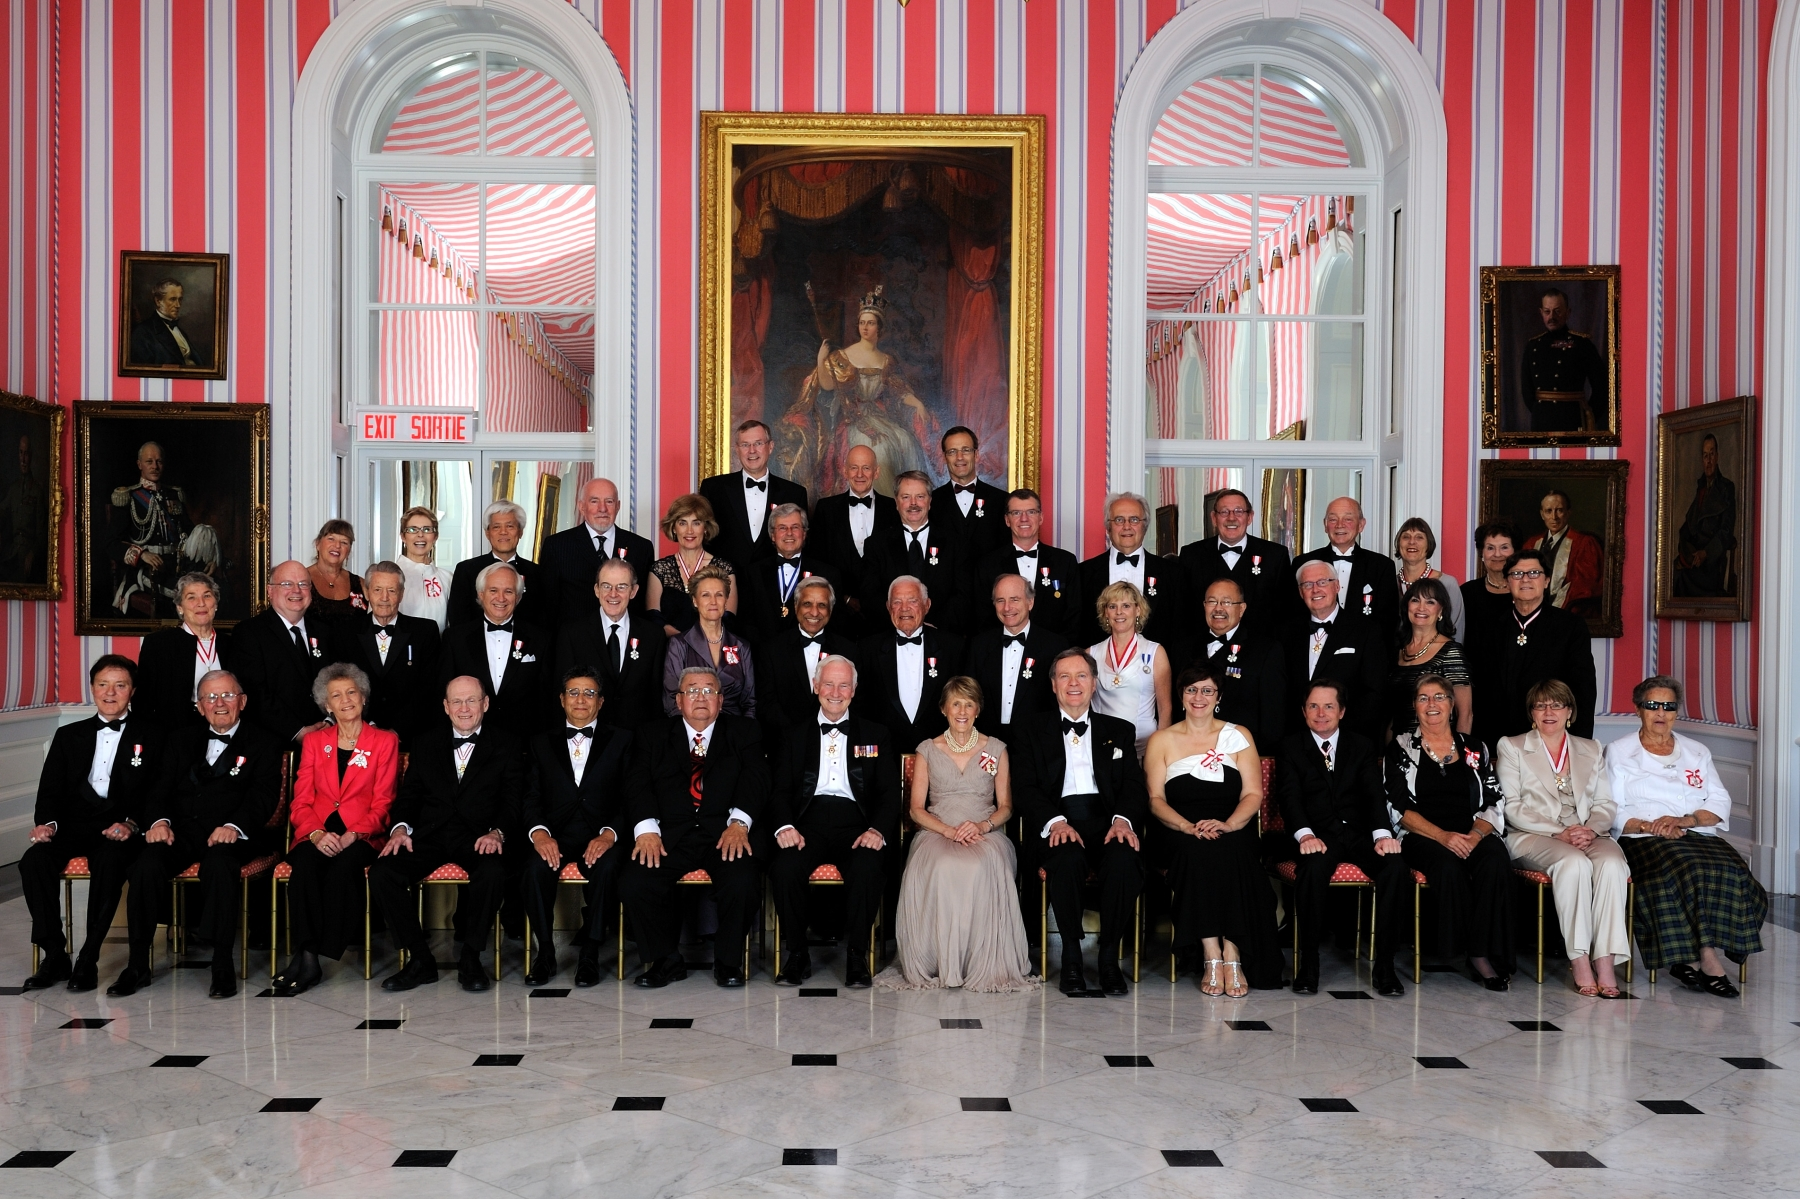 Their Excellencies are pictured with the 43 recipients who were invested into the Order of Canada on May 27, 2011.